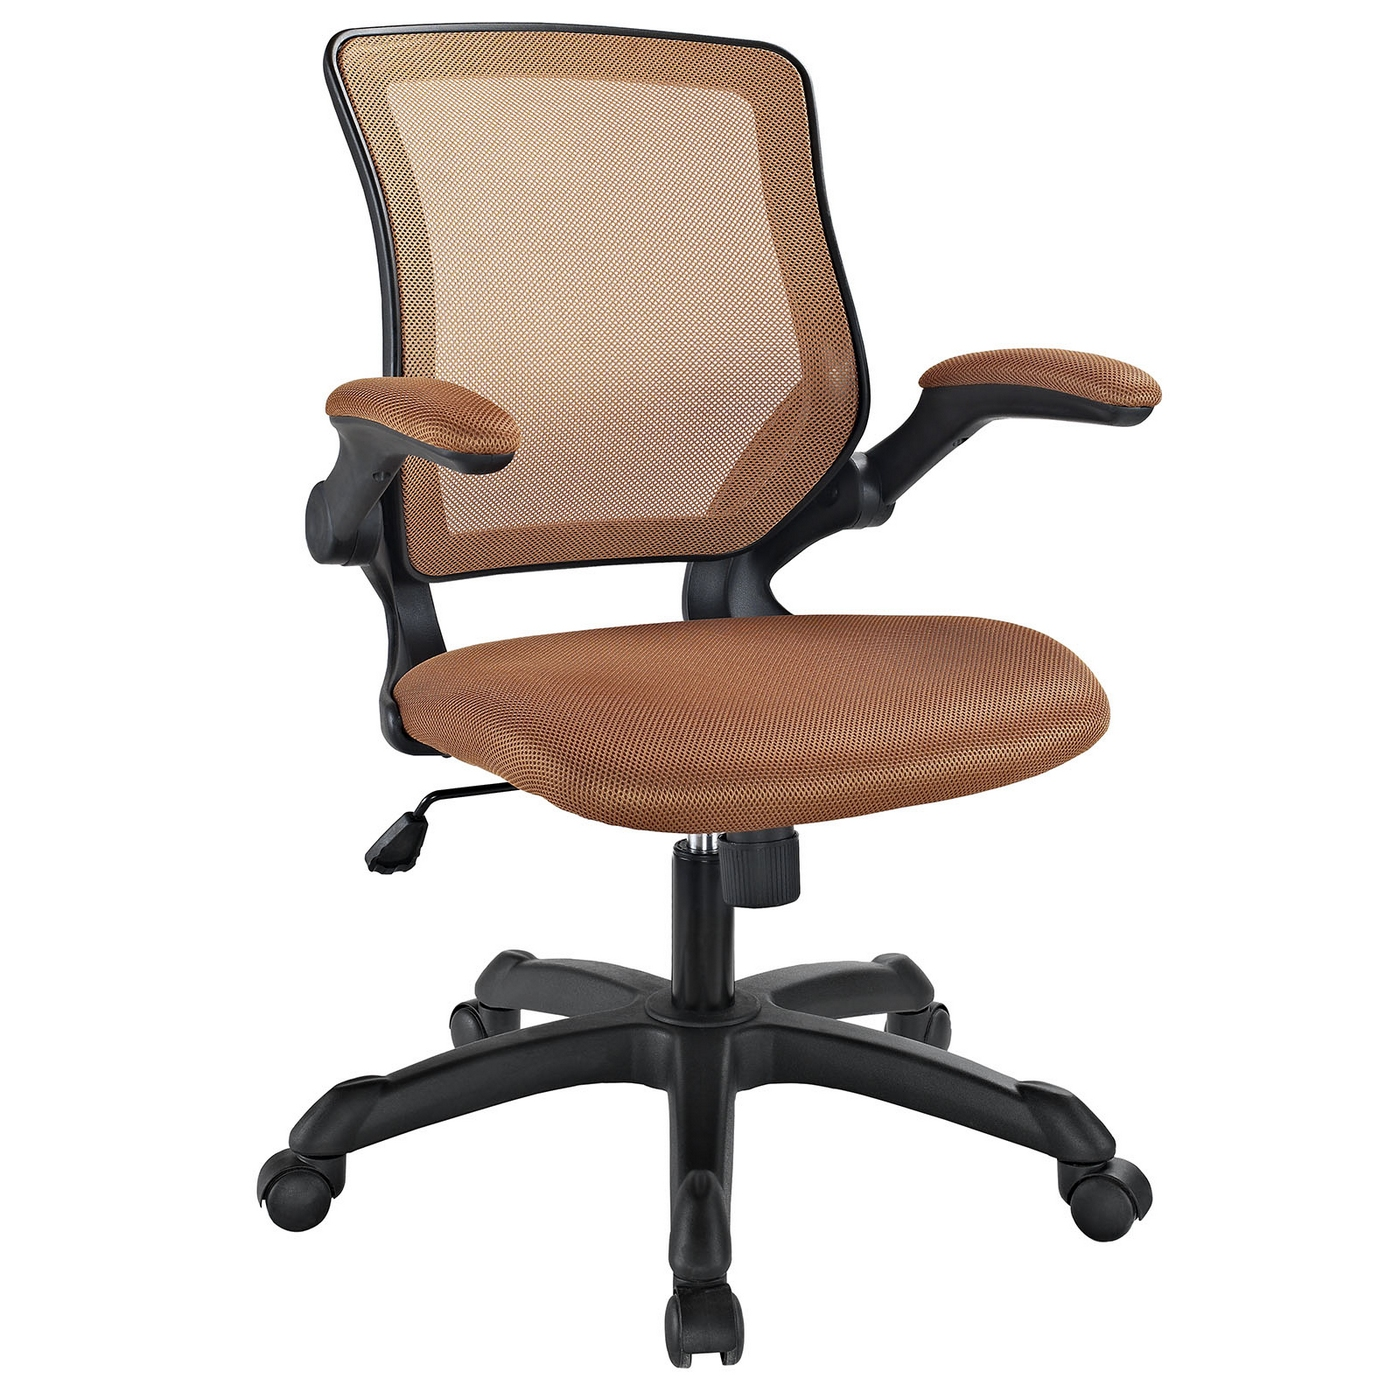 Tan Office Chair Veer Contemporary Ergonomic Mesh Multi Function Office